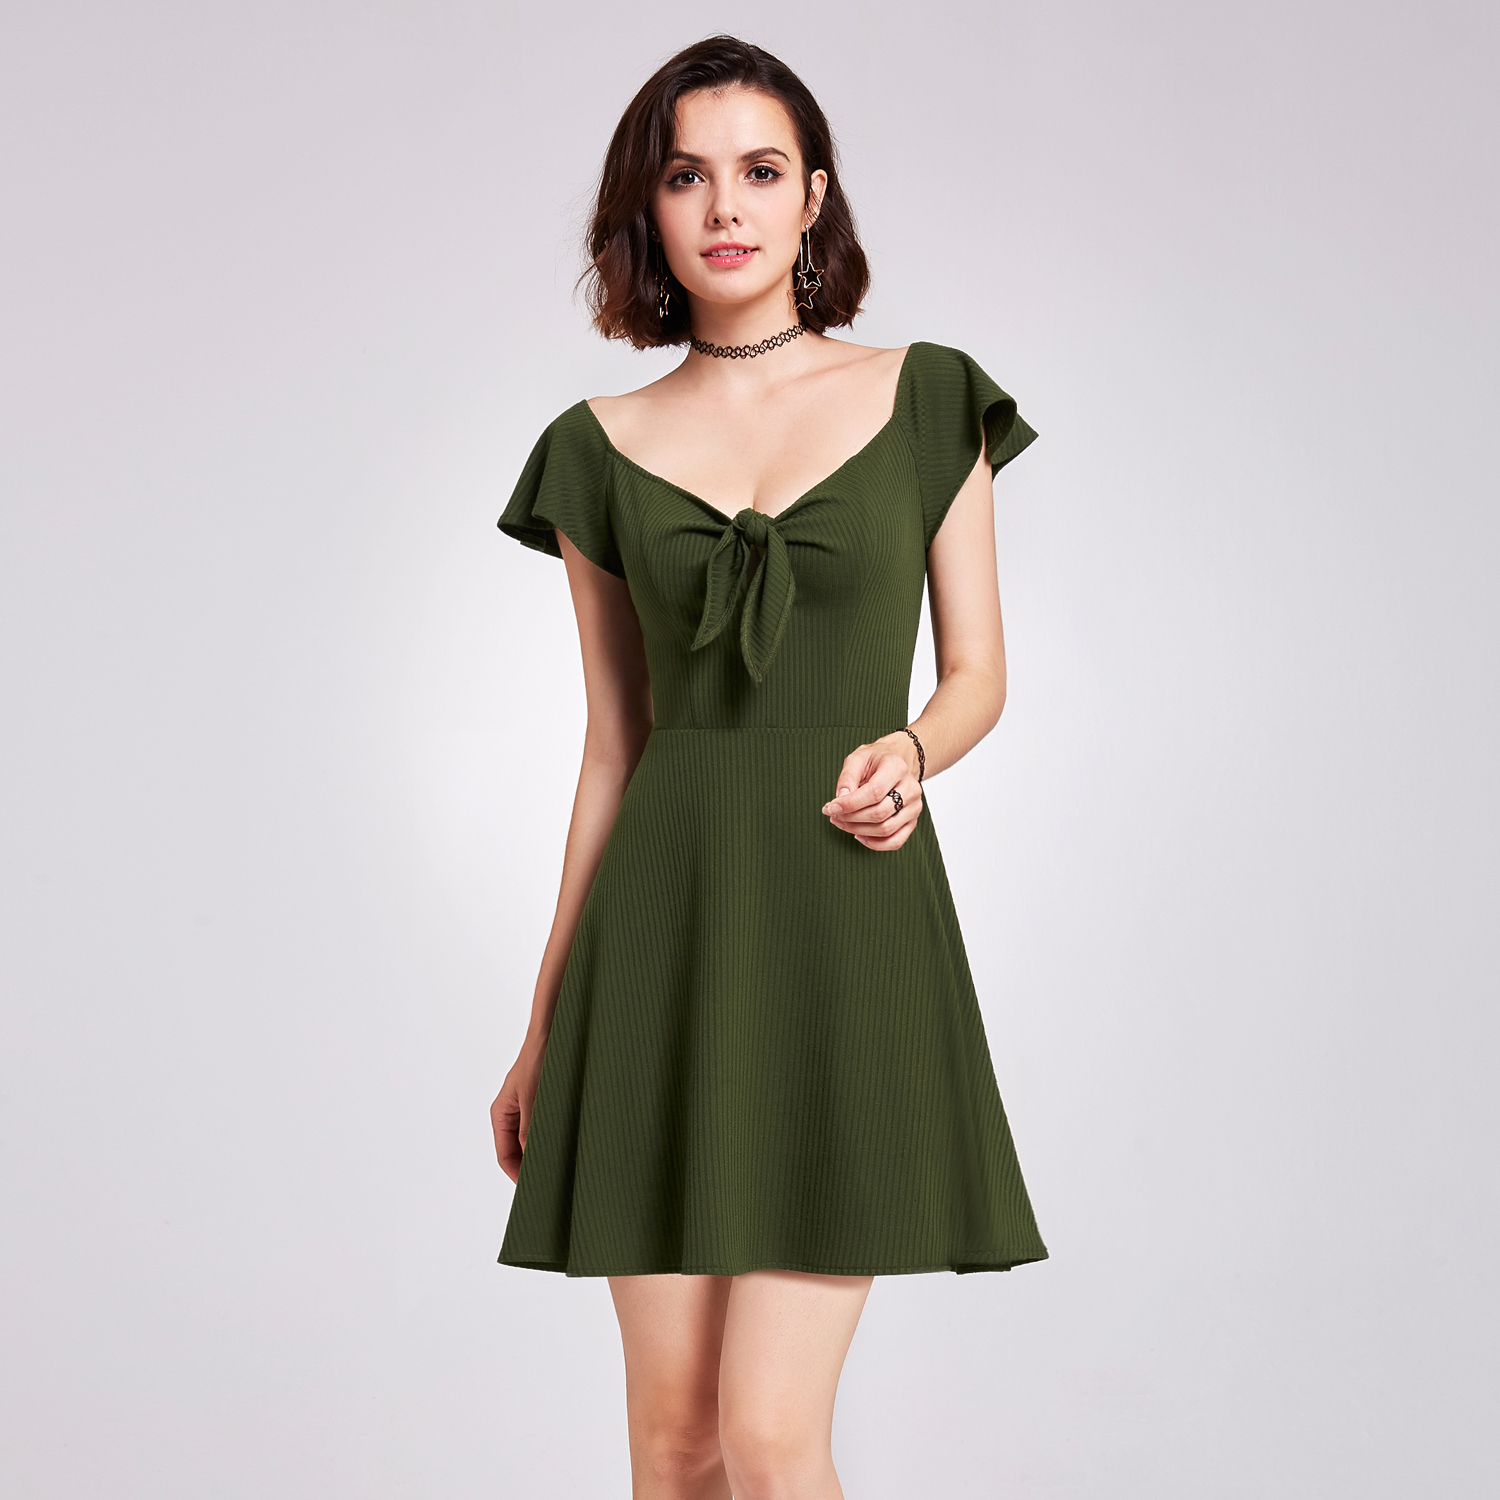 Alisa Pan Cocktail Party Dresses Short Sleeve V Neck Summer Dresses ...